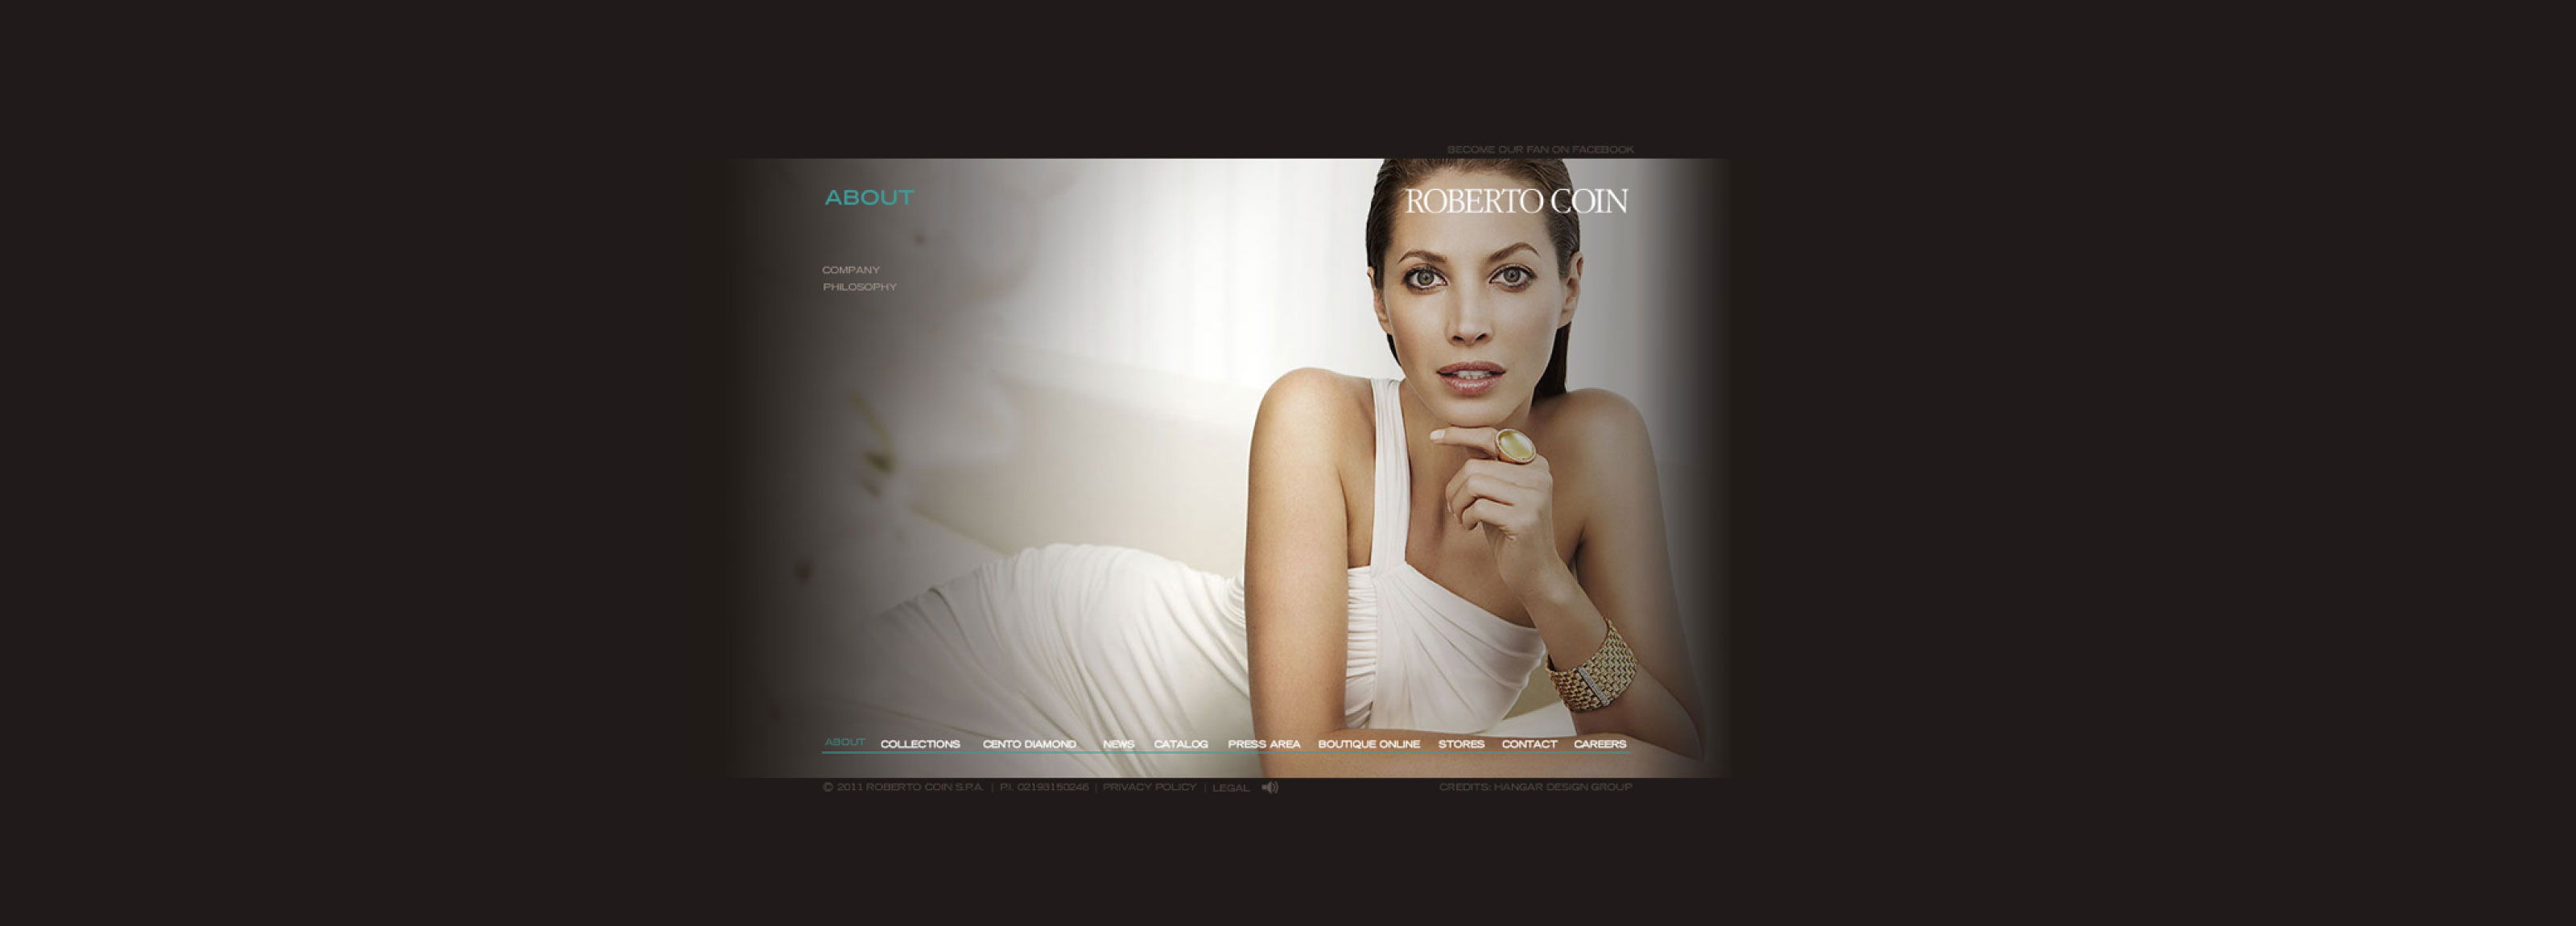 A new website design by Hangar Design Group for high-end jewellery brand.